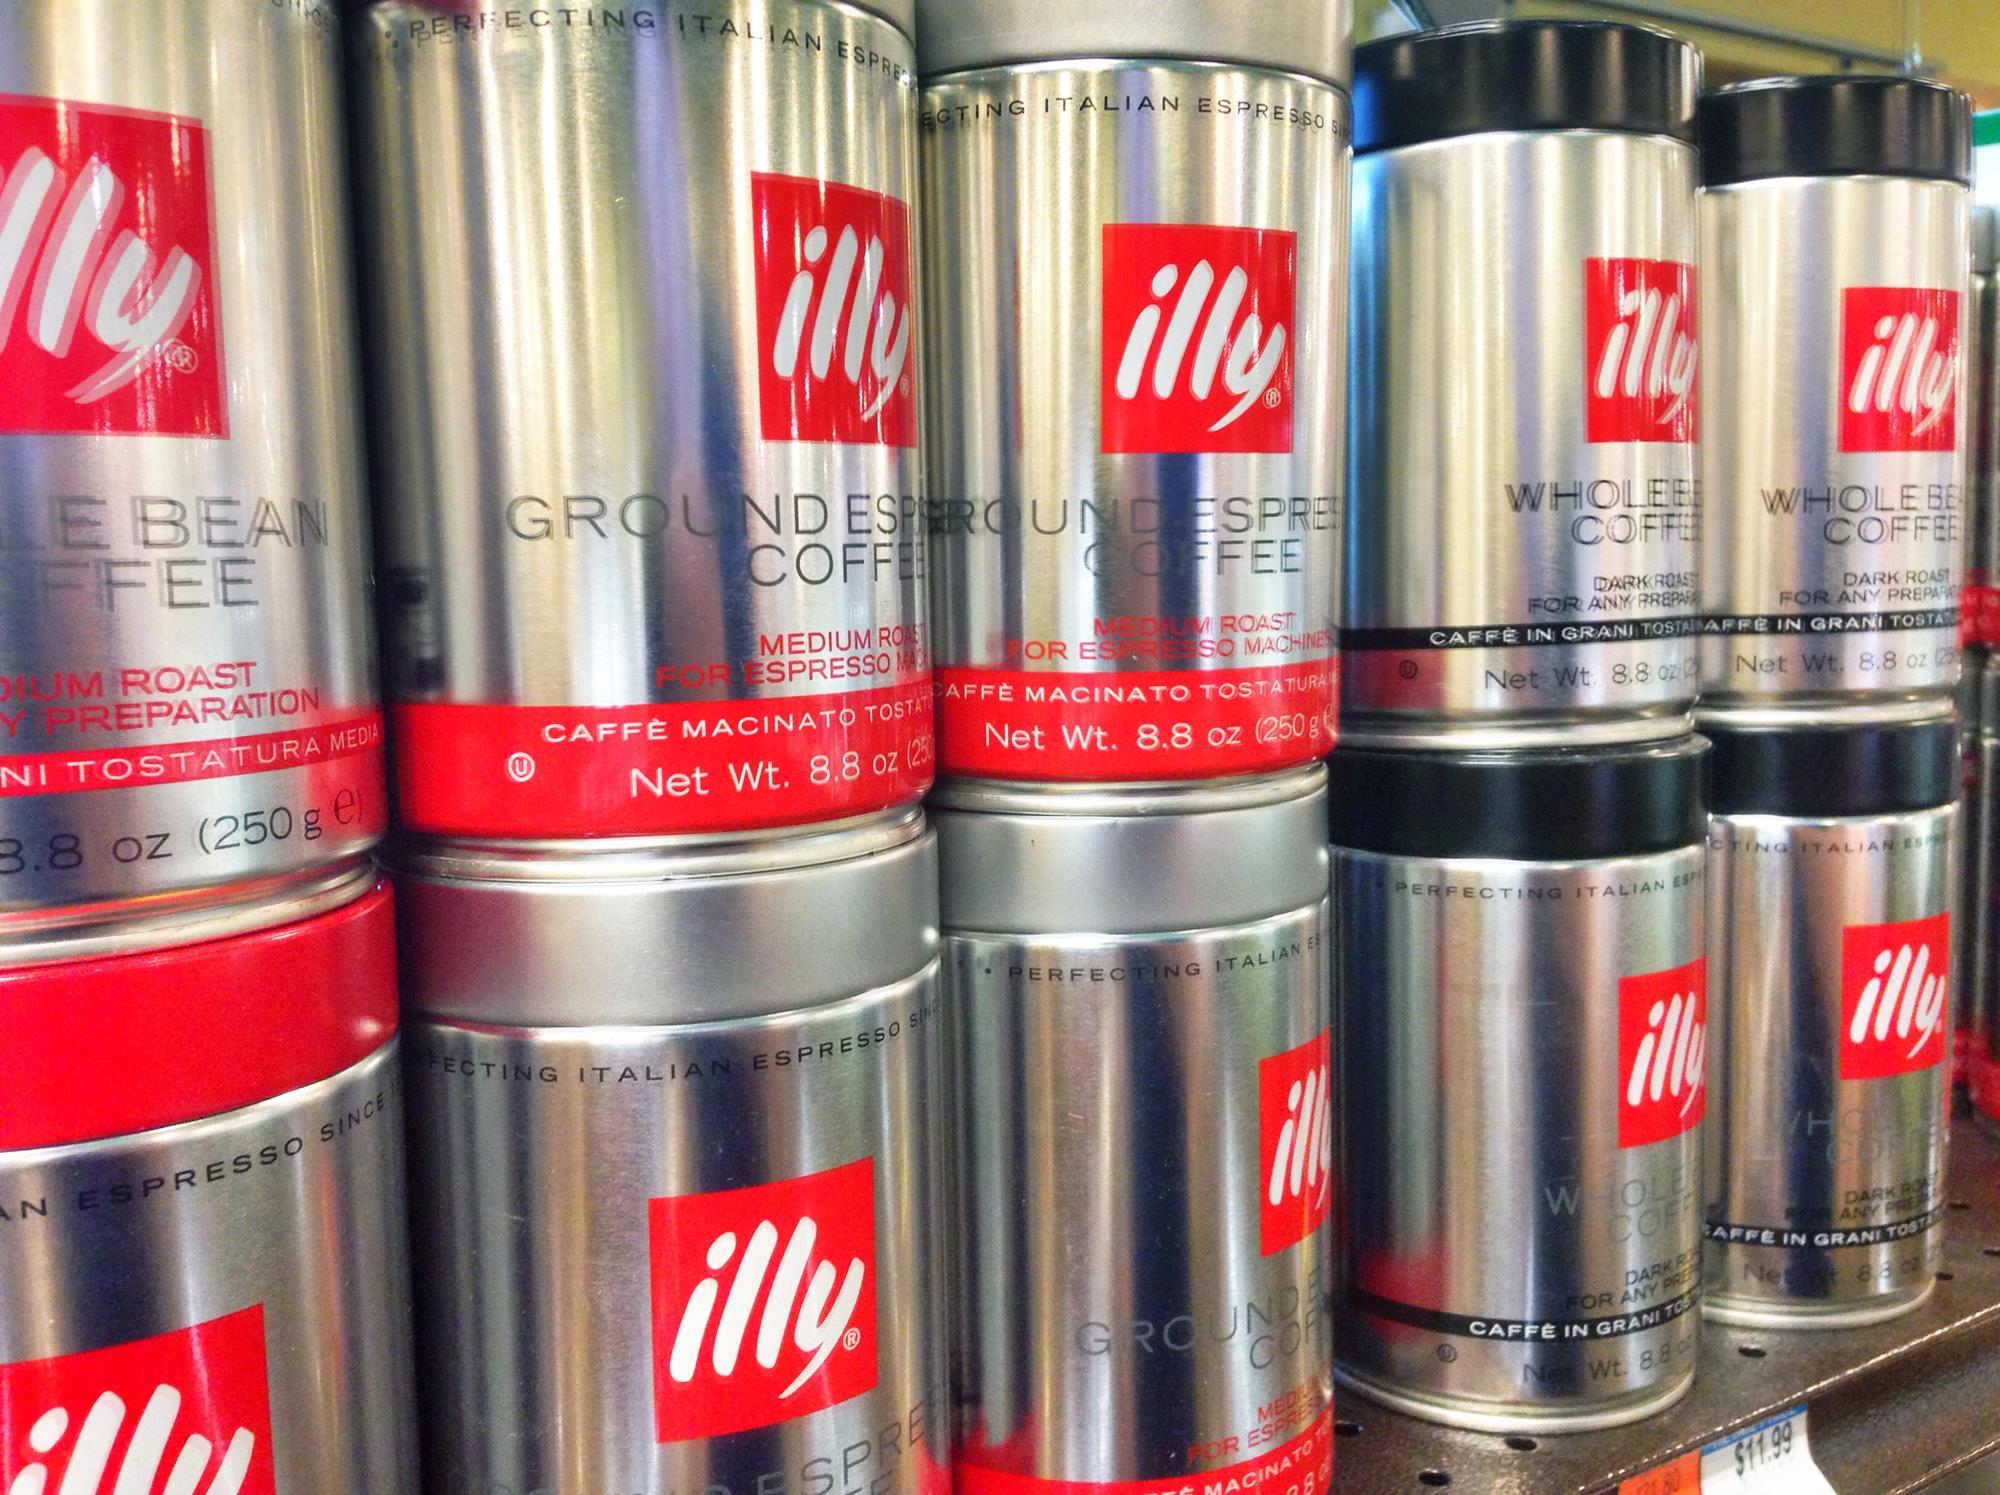 Nestlé And Jab Looking To Buy Italian Coffee Maker Illy